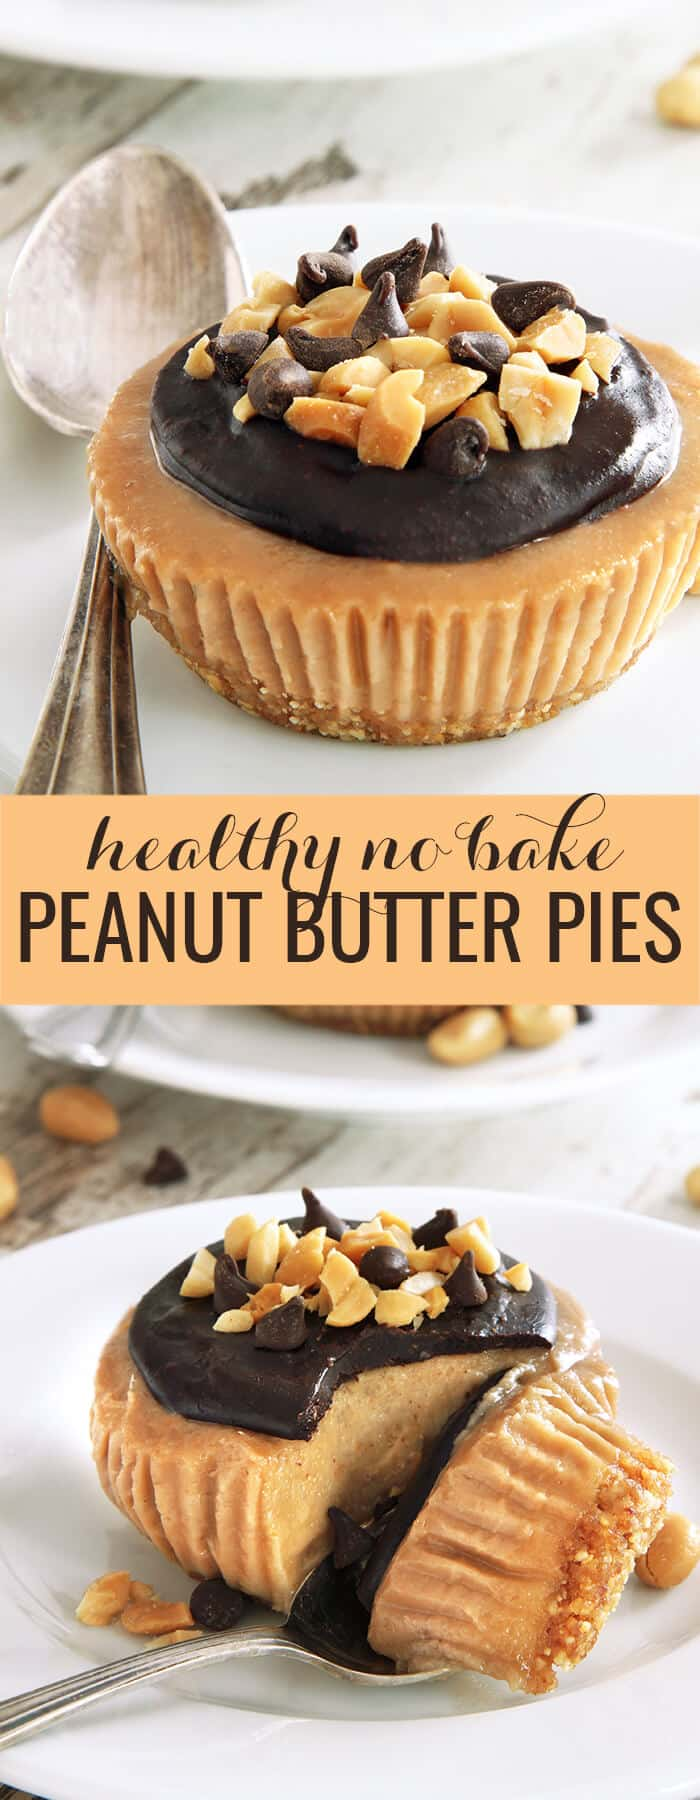 This no bake peanut butter pie recipe is made into healthy single-serve miniatures, with coconut milk instead of cream cheese in the filling. So simple and delicious! https://glutenfreeonashoestring.com/no-bake-peanut-butter-pie-gluten-free/